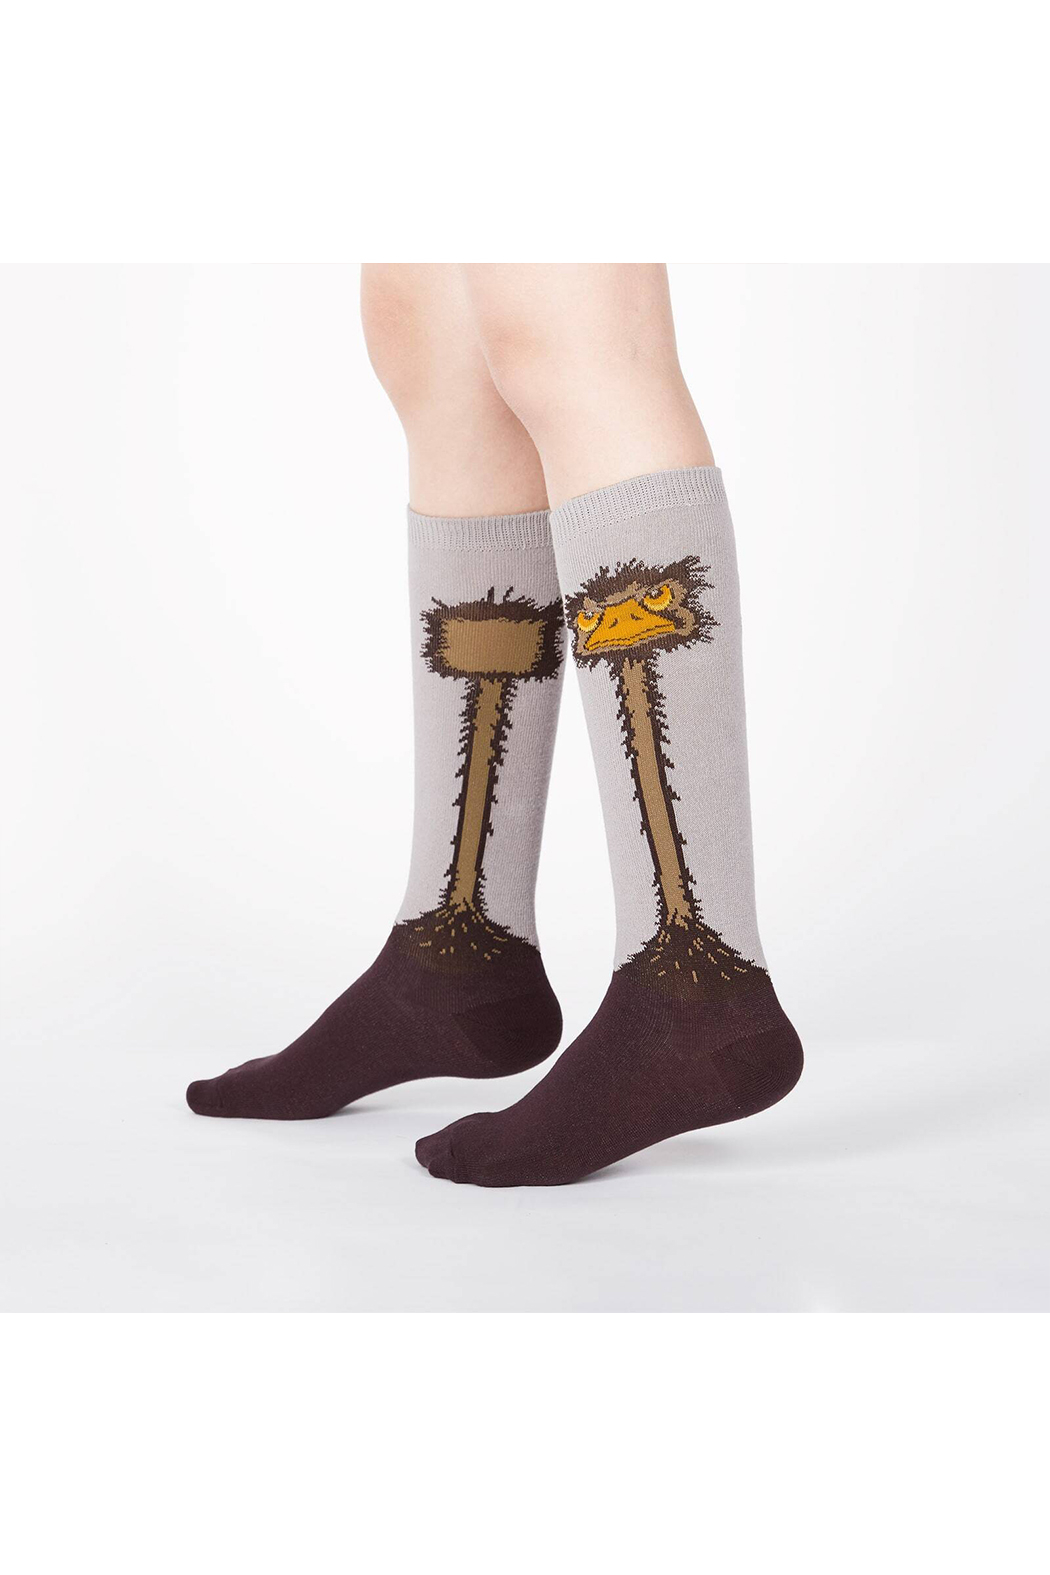 Sock it to me Ostrich Knee High Socks - Junior & Youth - Main Image